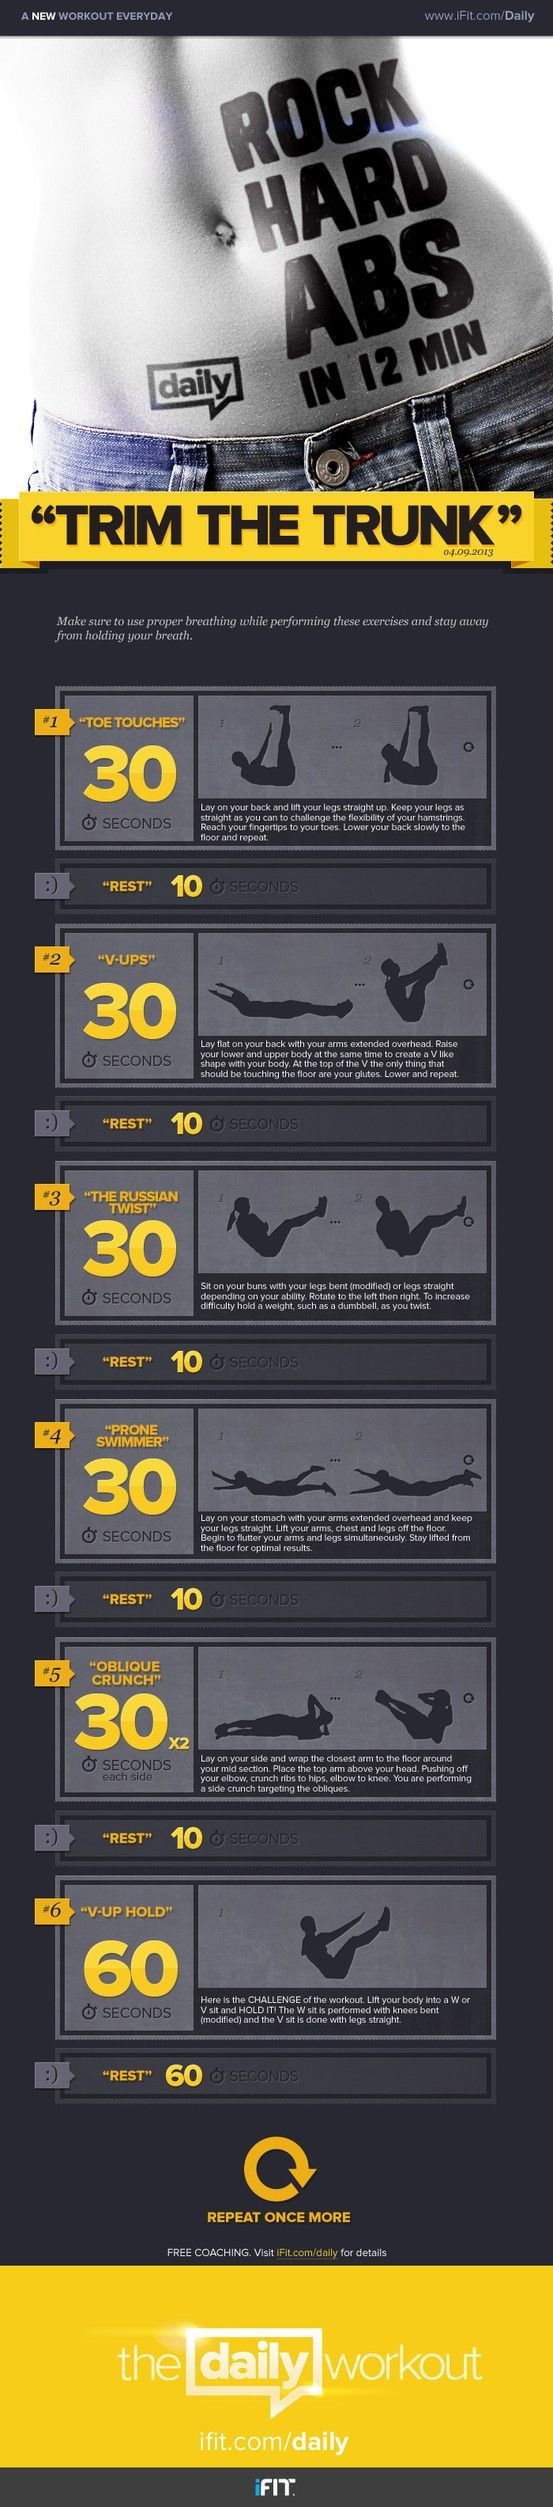 Trim the Trunk Ab Workout